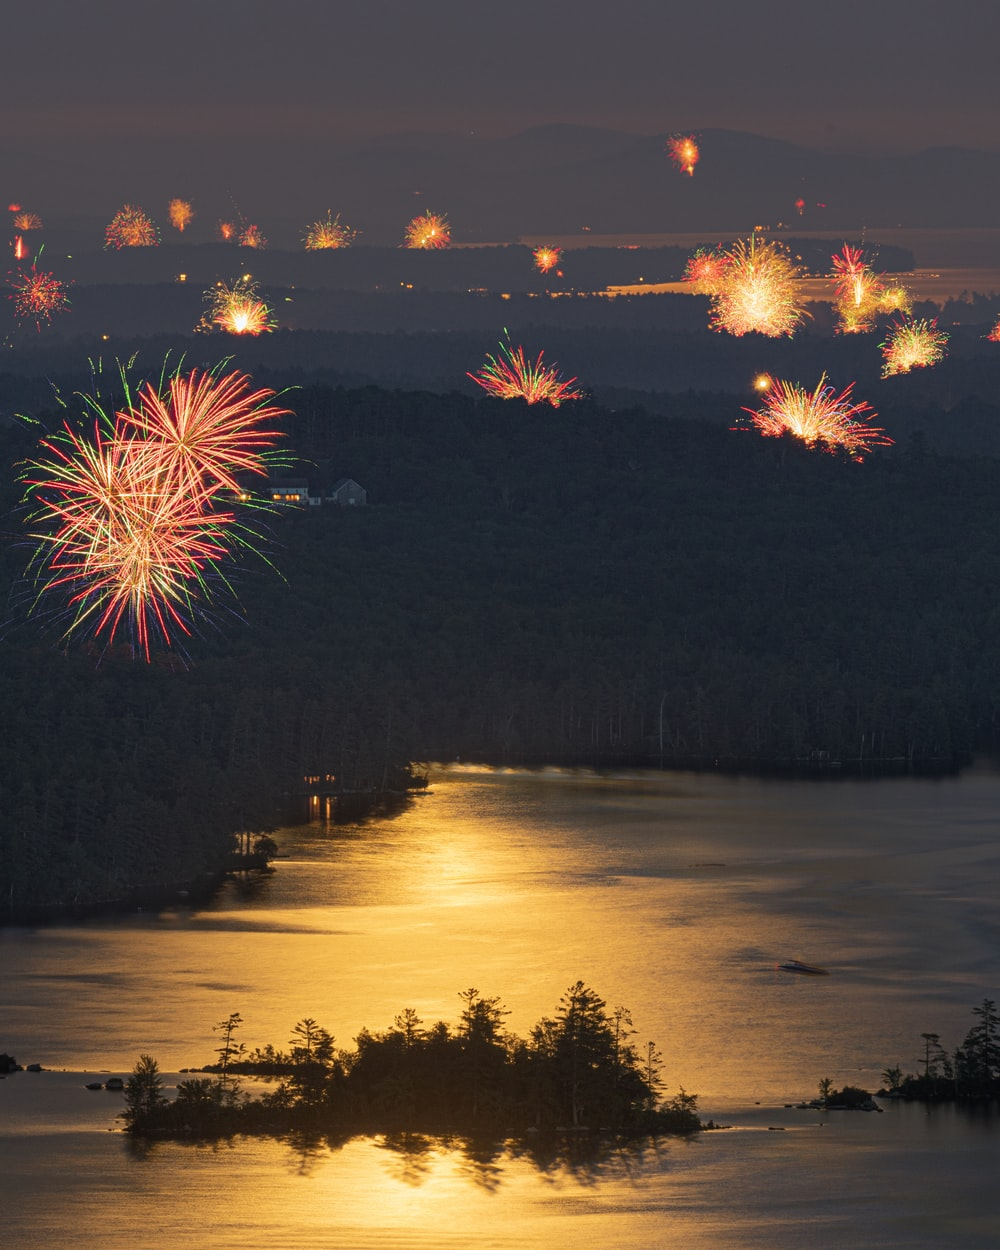 fireworks display over lake during night time